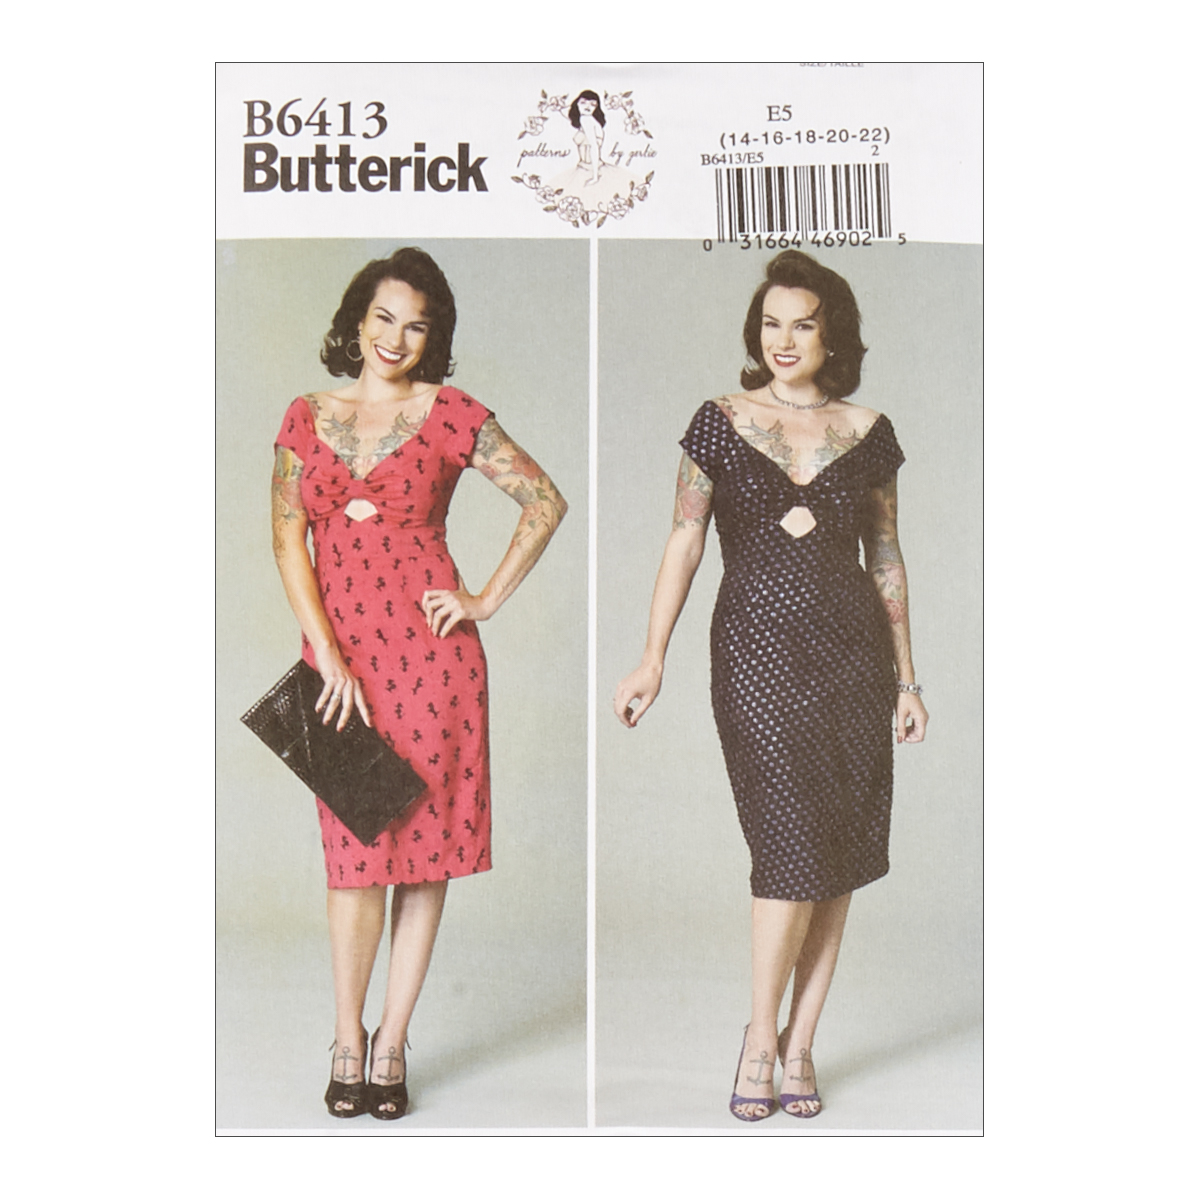 1960s – 70s Sewing Patterns- Dresses, Tops, Pants, Mens Butterick B6413 Patterns by Gertie Misses Gathered-Front Keyhole Dress E5 Sizes 14-22 $11.97 AT vintagedancer.com